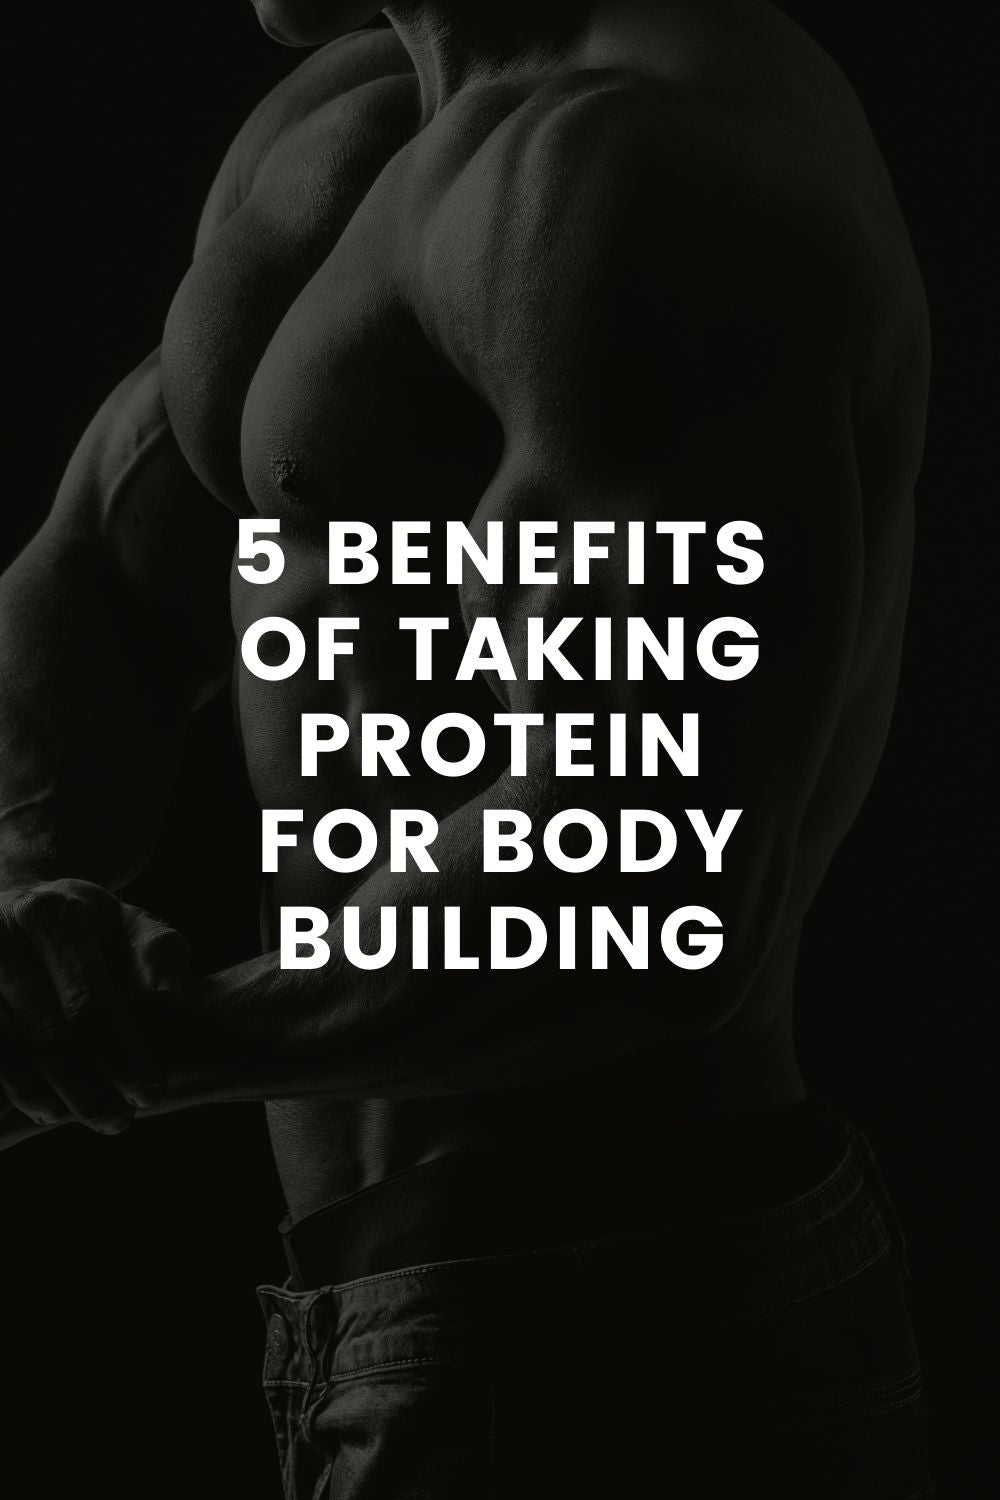 5 Benefits of Taking Protein for Body Building